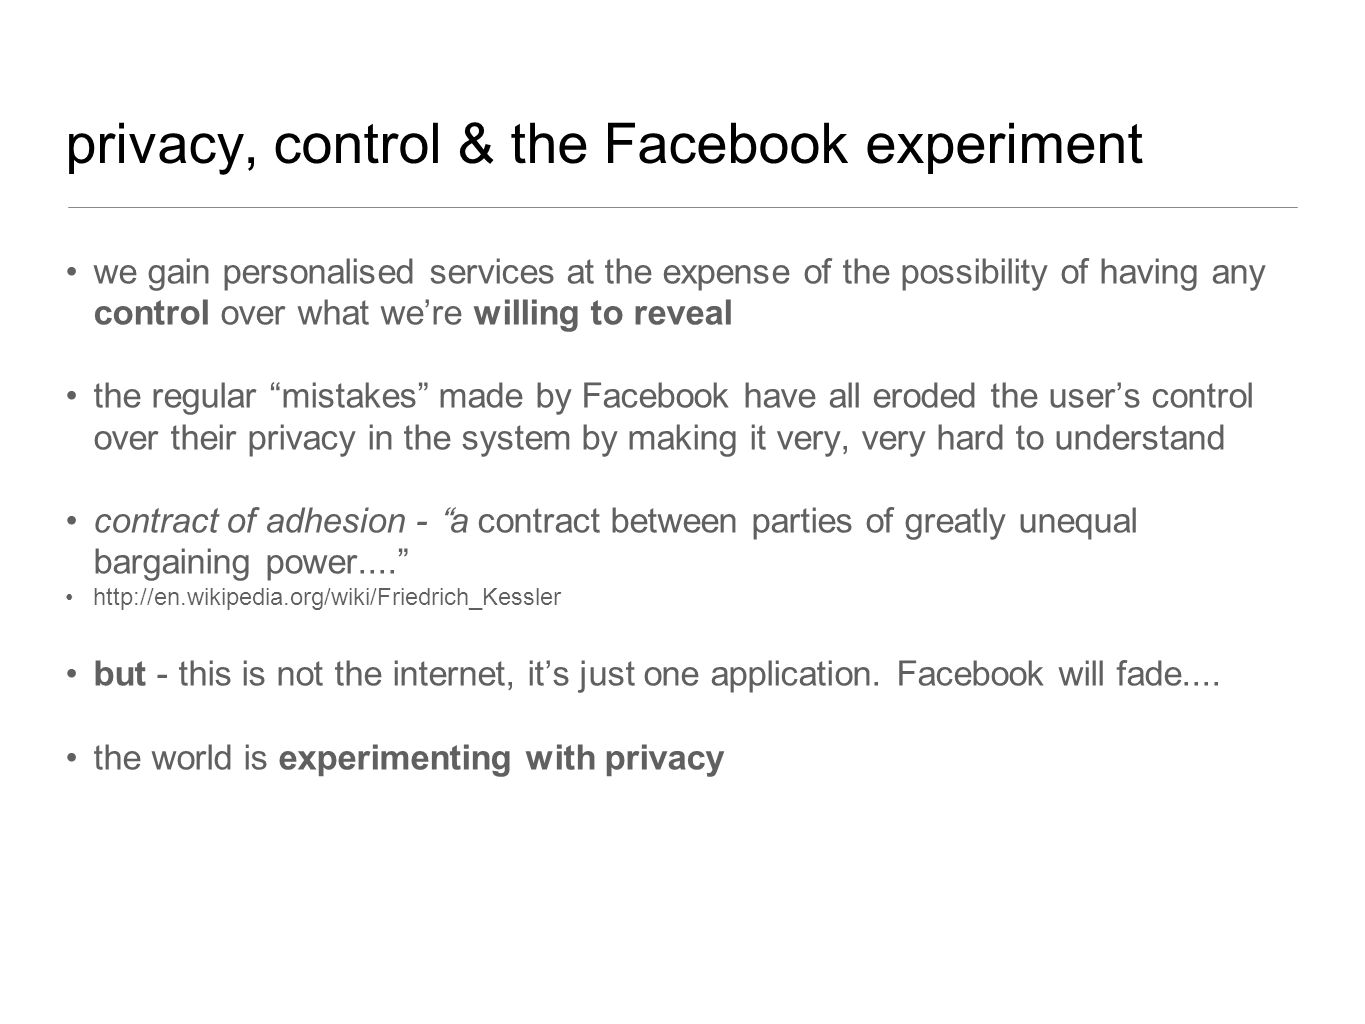 privacy, control & the Facebook experiment we gain personalised services at the expense of the possibility of having any control over what were willing to reveal the regular mistakes made by Facebook have all eroded the users control over their privacy in the system by making it very, very hard to understand contract of adhesion - a contract between parties of greatly unequal bargaining power....